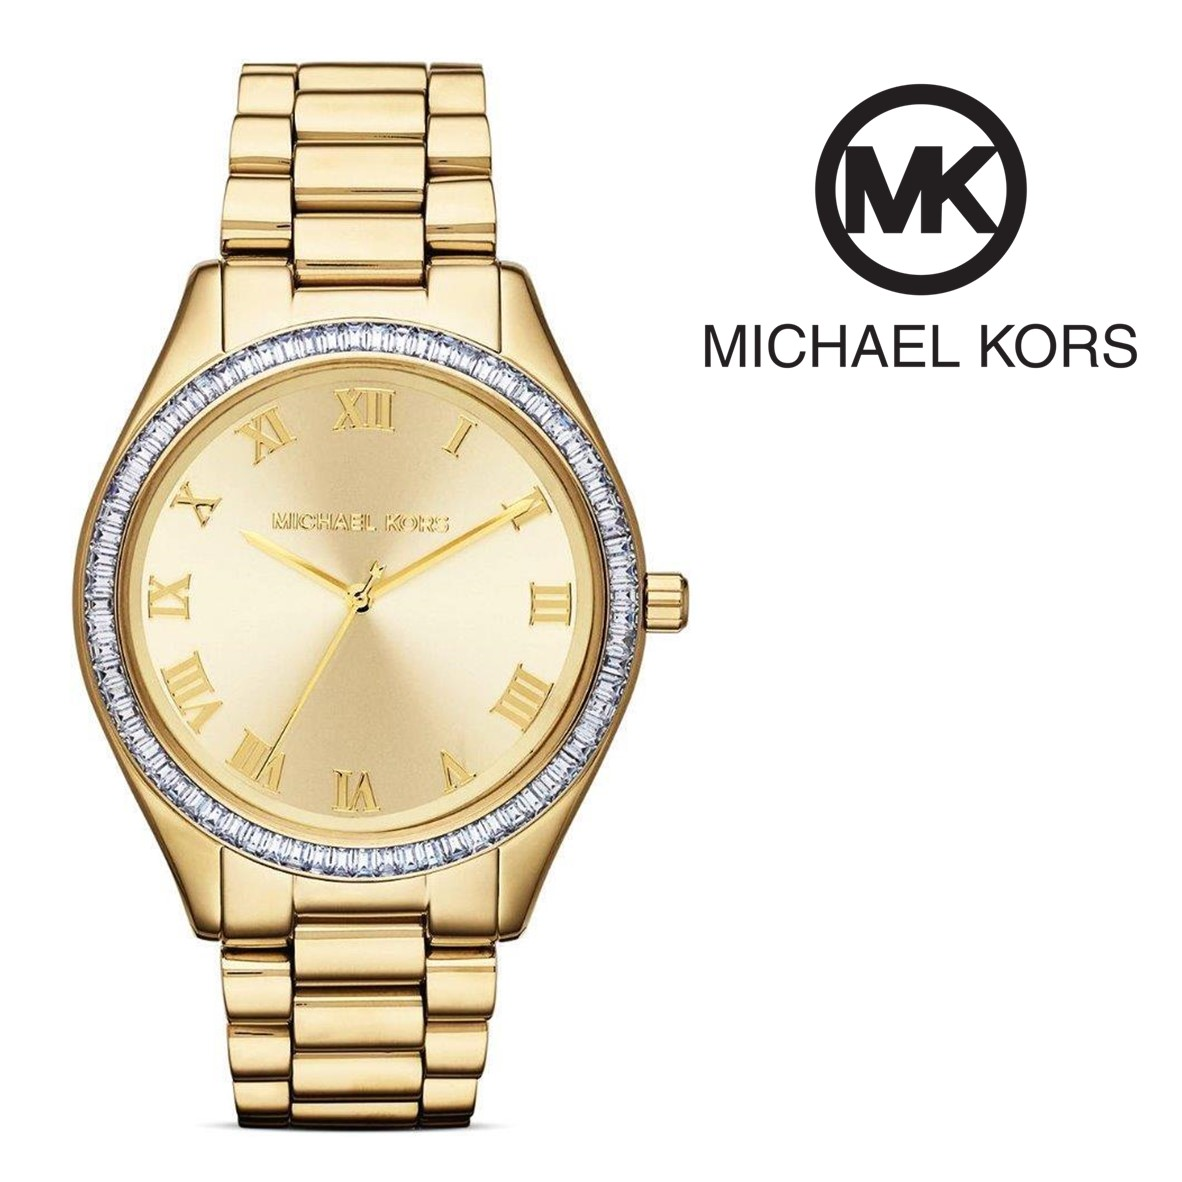 Relógio Michael Kors® MK3244 - You Like It 7c7c0f813c